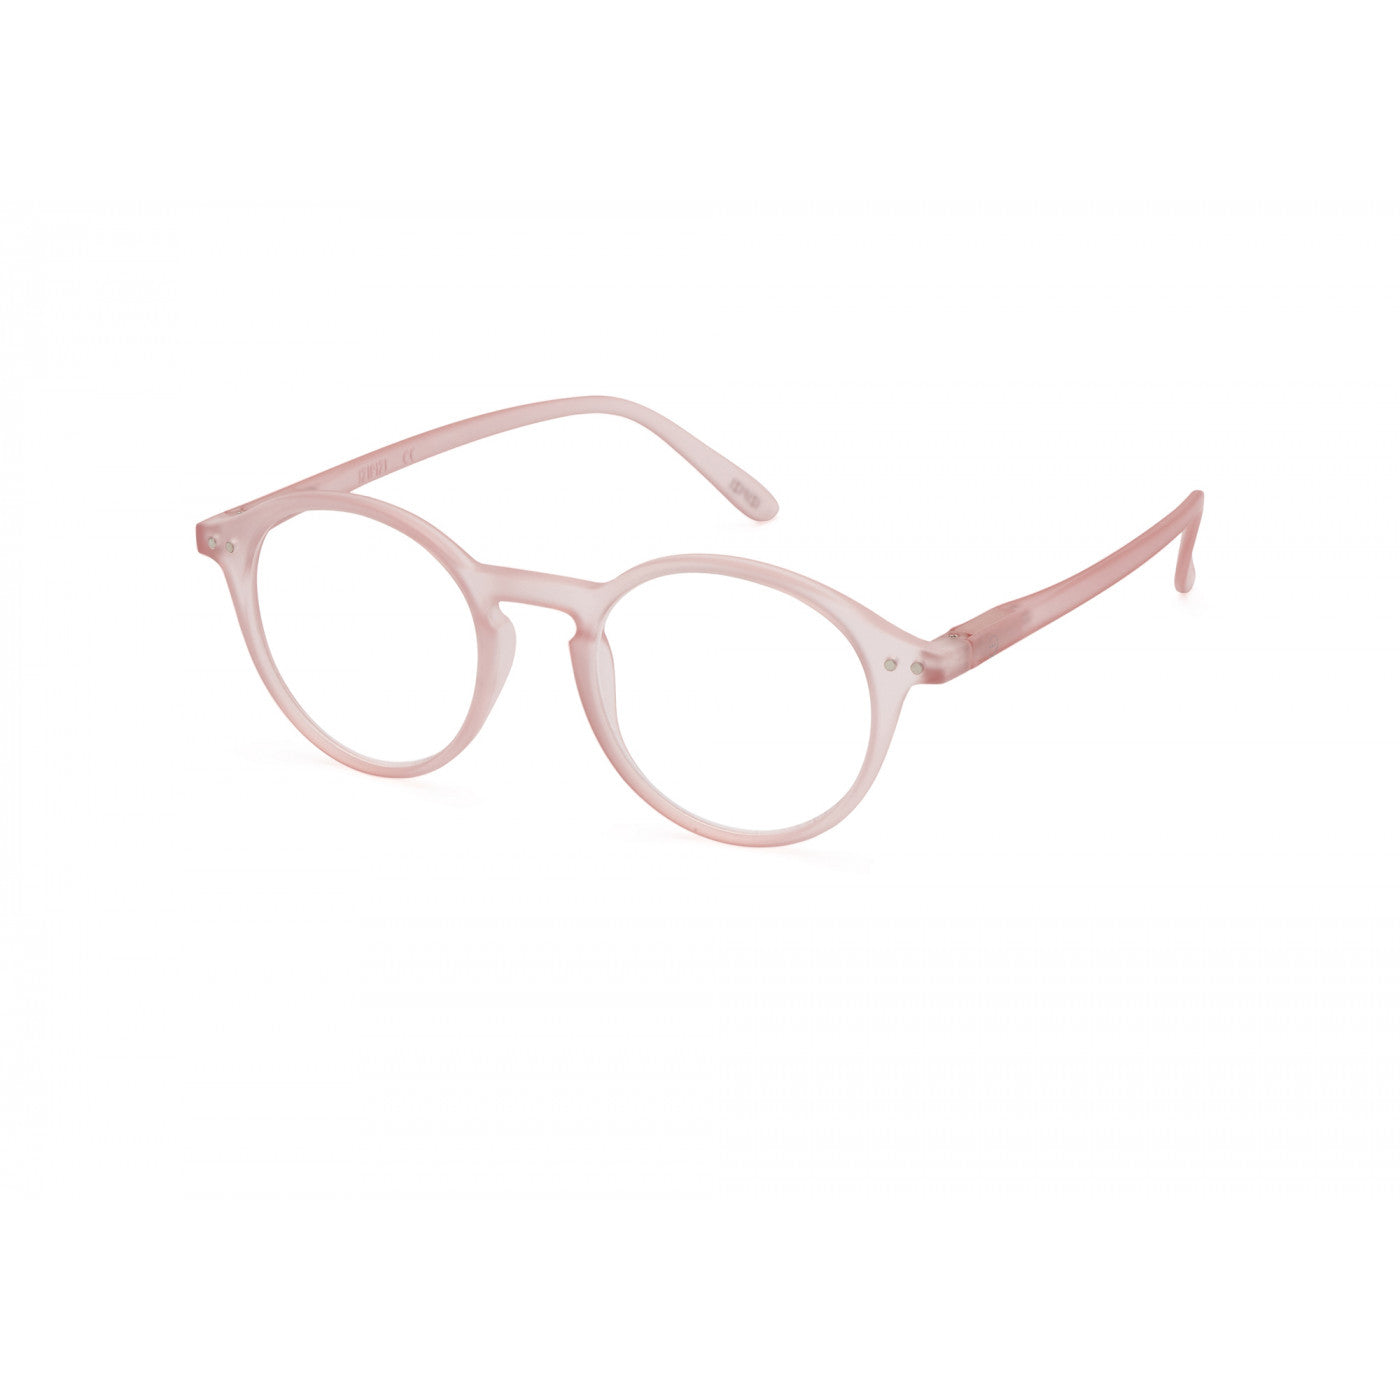 Izipizi Readers +3.00 #D - Halo Pink